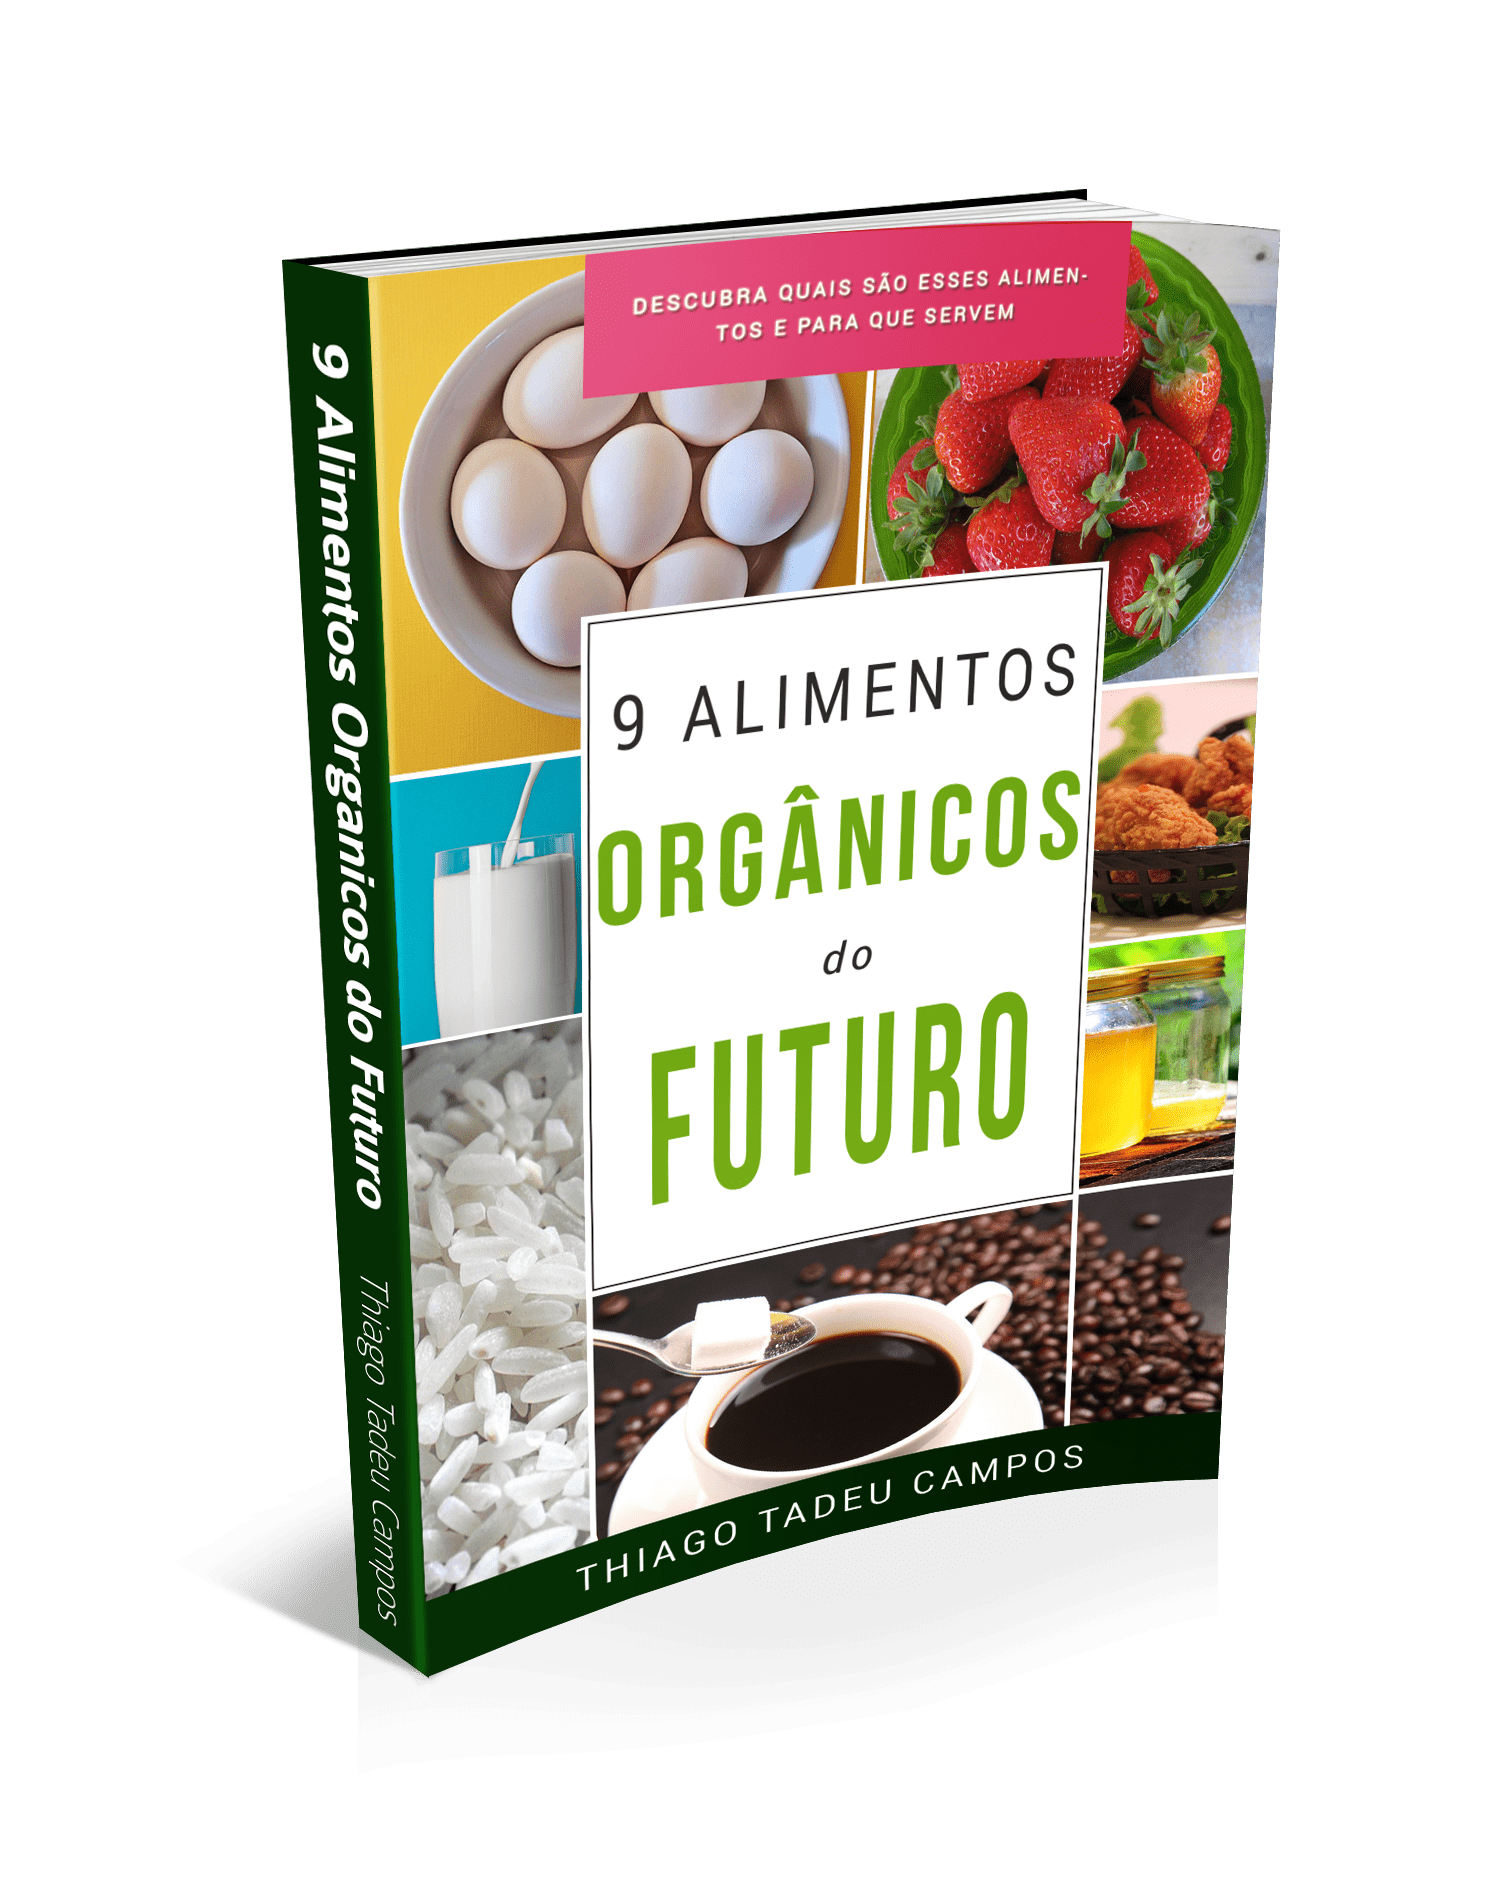 Ebook 9 Alimentos Orgânicos do Futuro